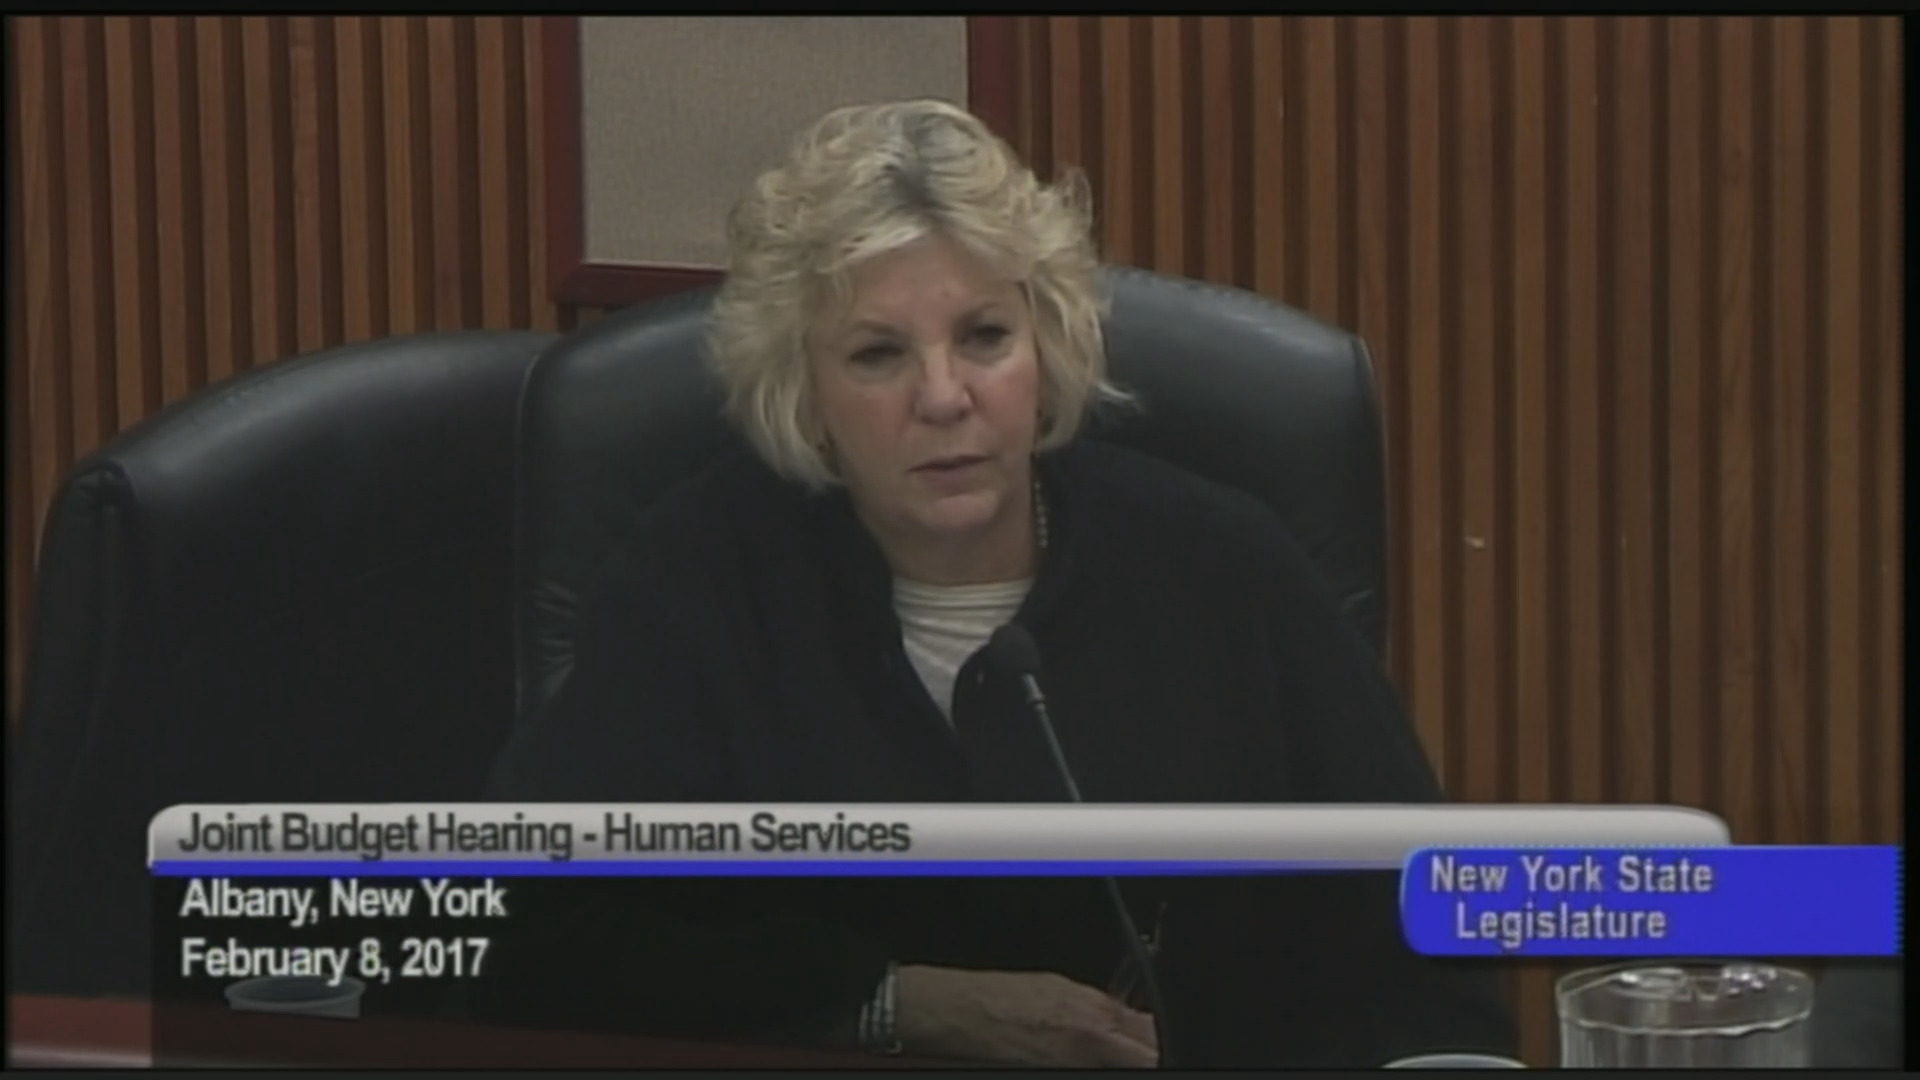 Assembly-Senate Budget Hearing on Funding for Human Services